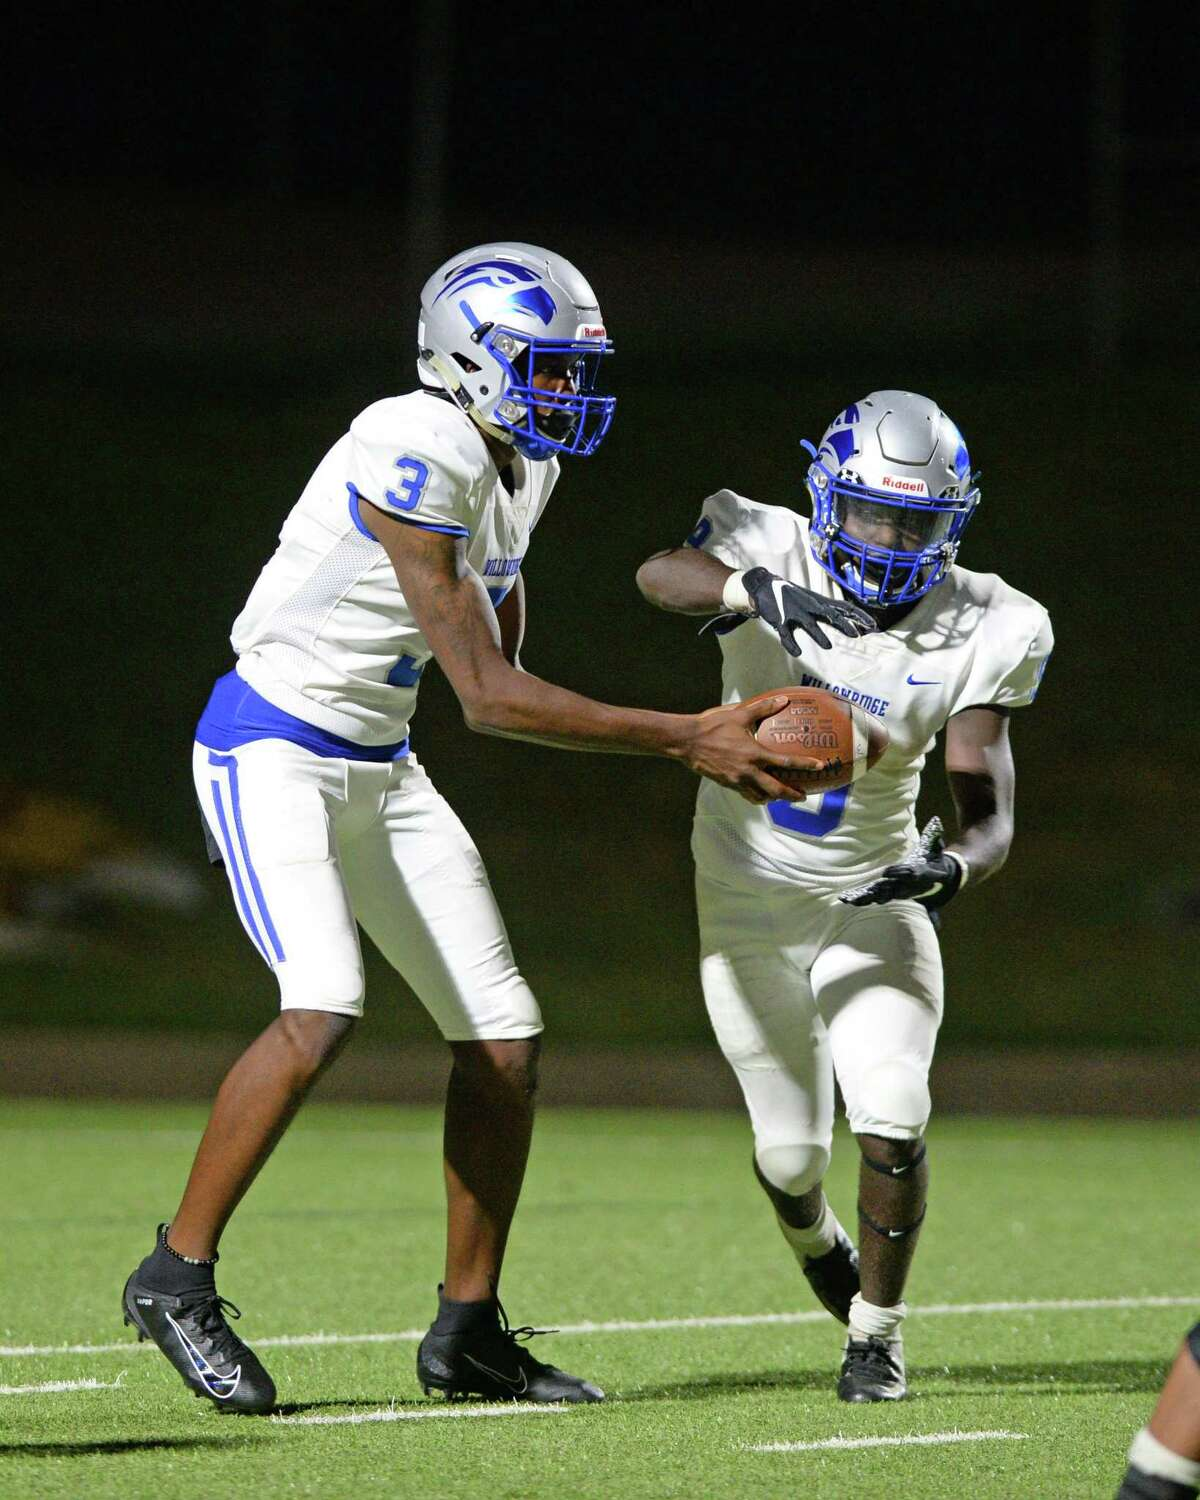 Willowridge remains undefeated this season after winning in a 47-7 rout over Northside. Rufus Scott, left, and Javion Chatman combined for four scores.